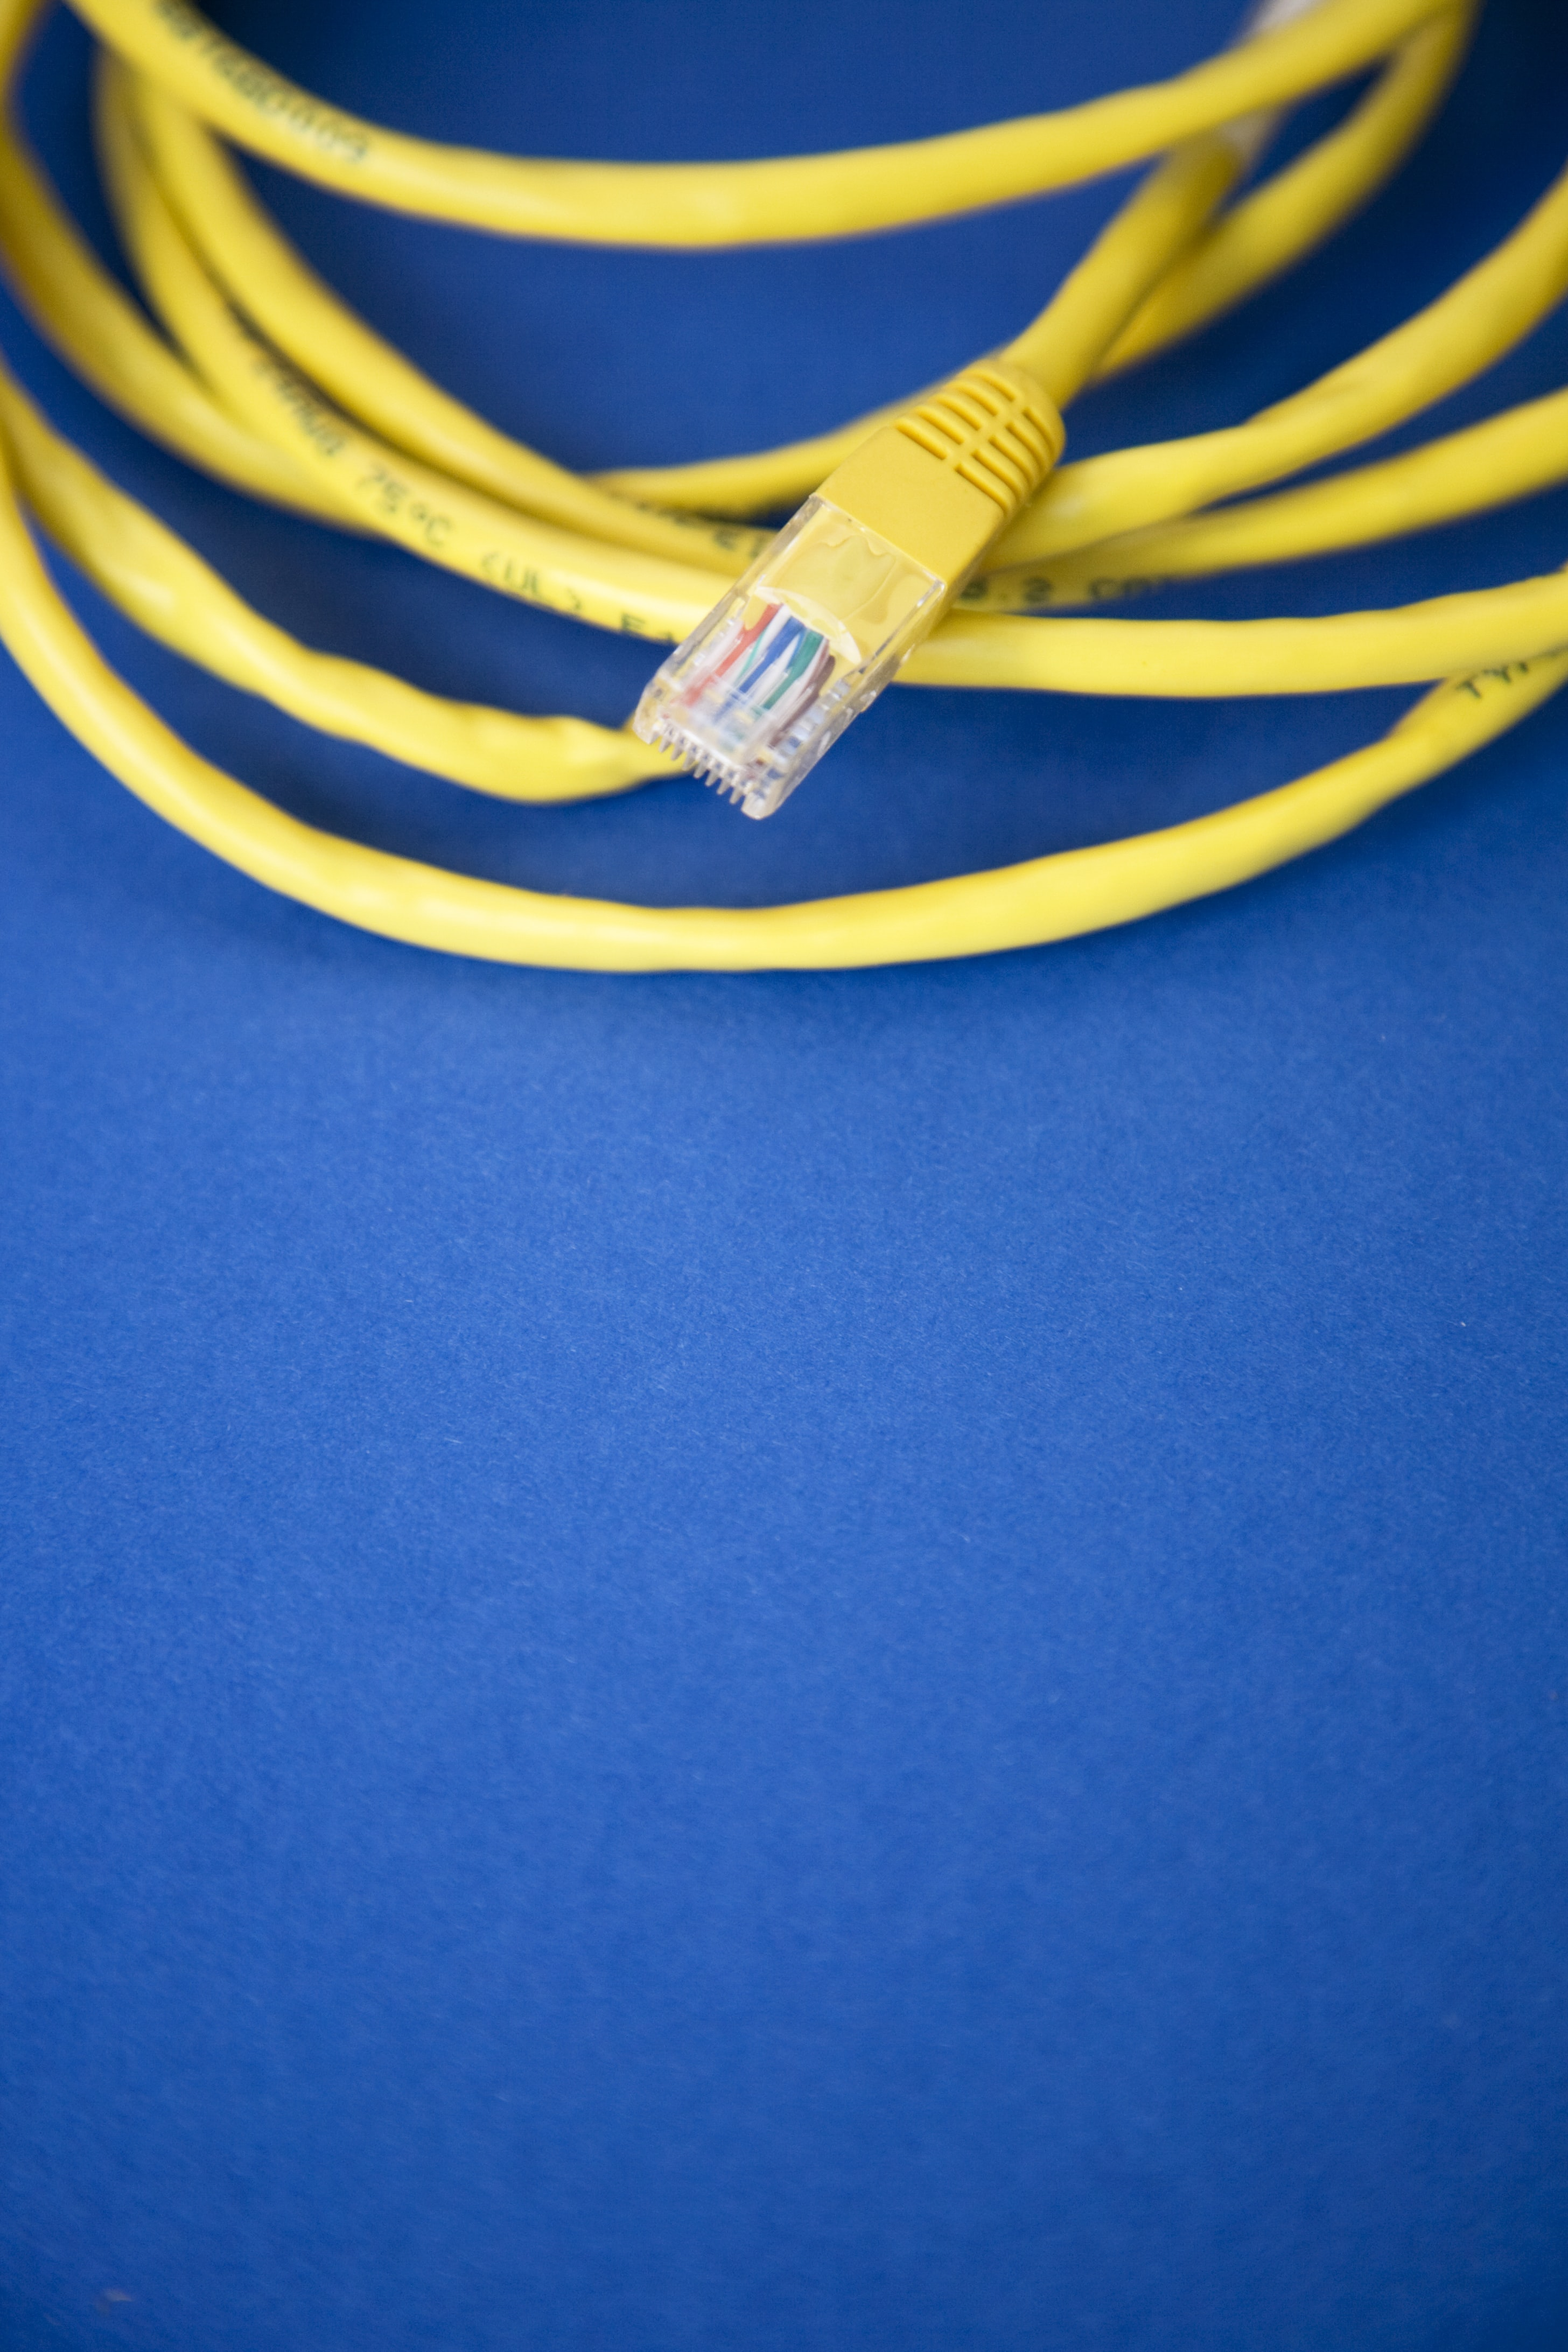 Ethernet cable on blue surface